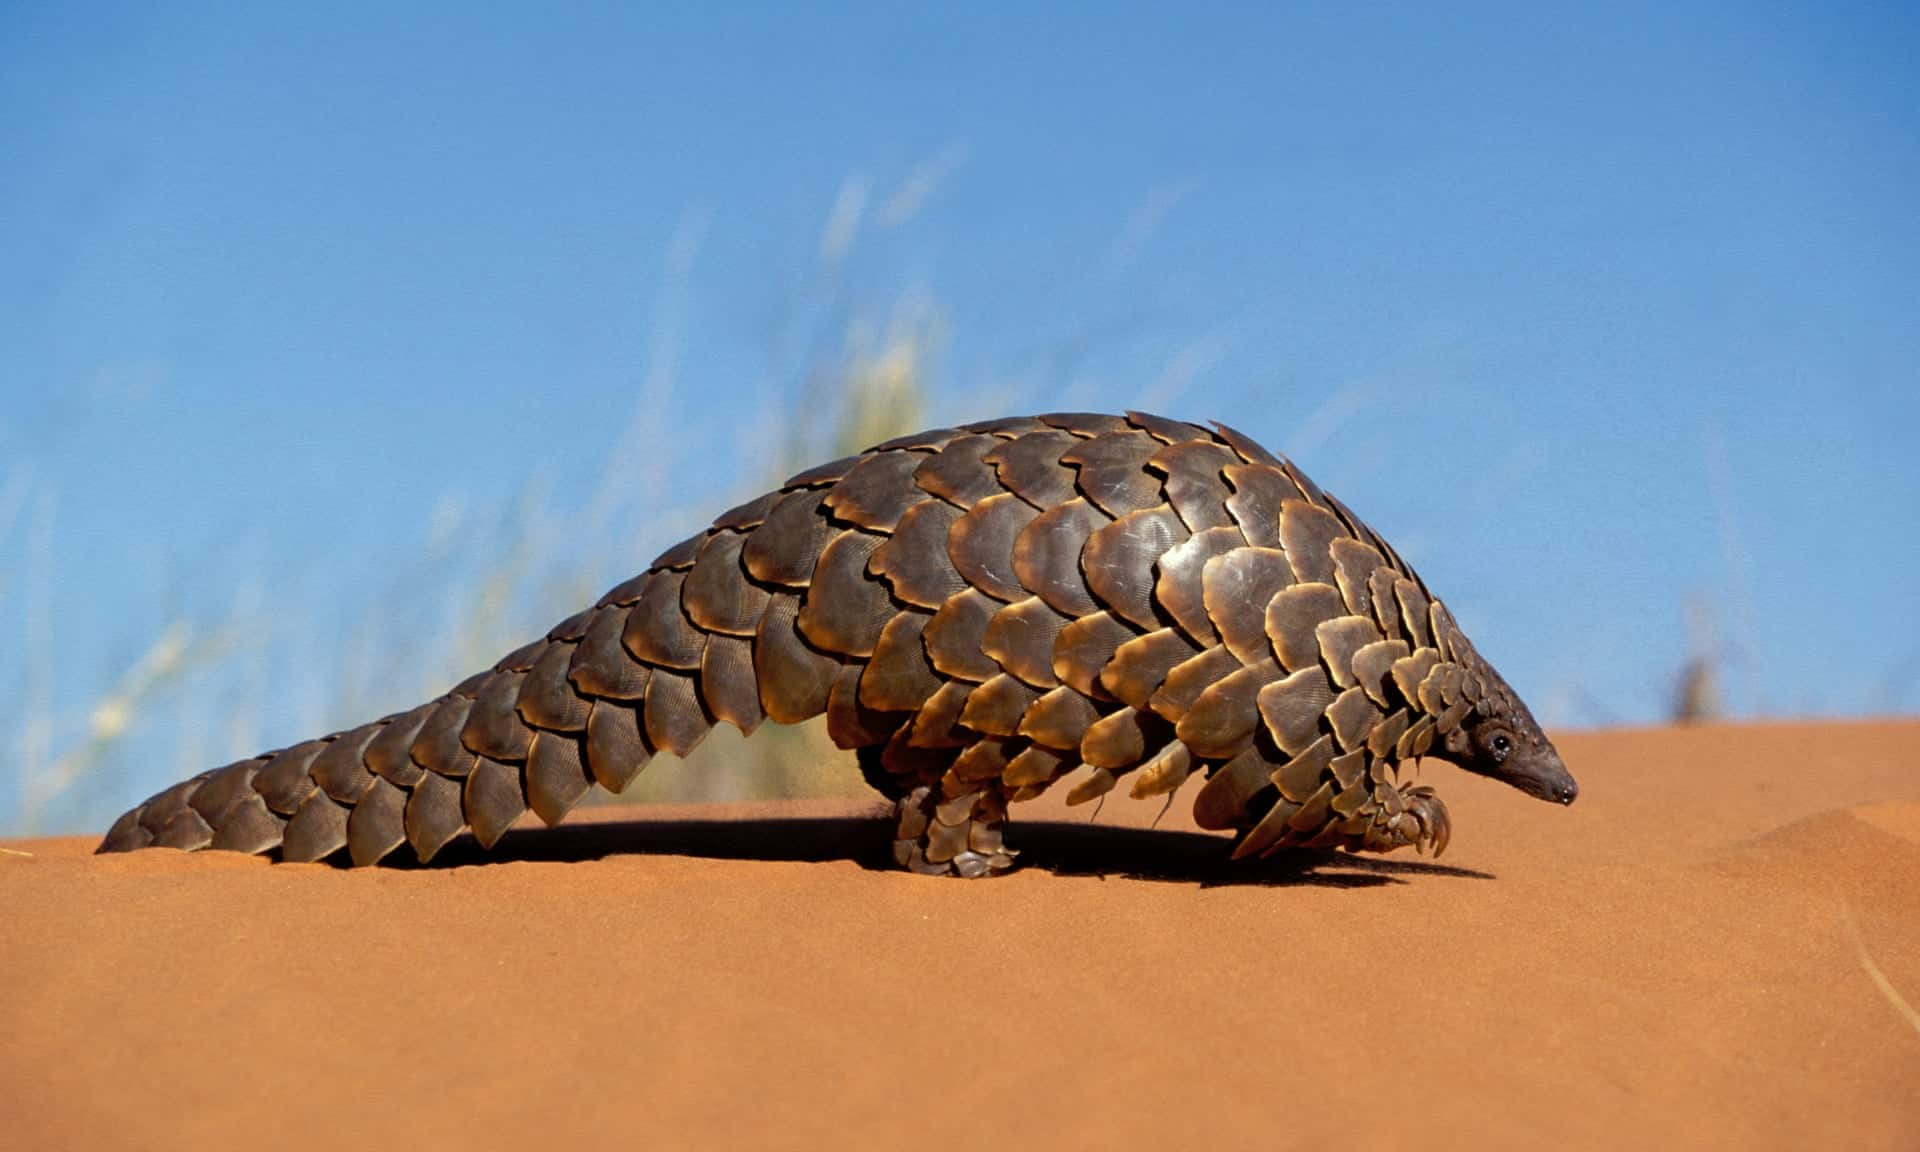 A desert pangolin, with brown scales edged in yellow, pangolin facts